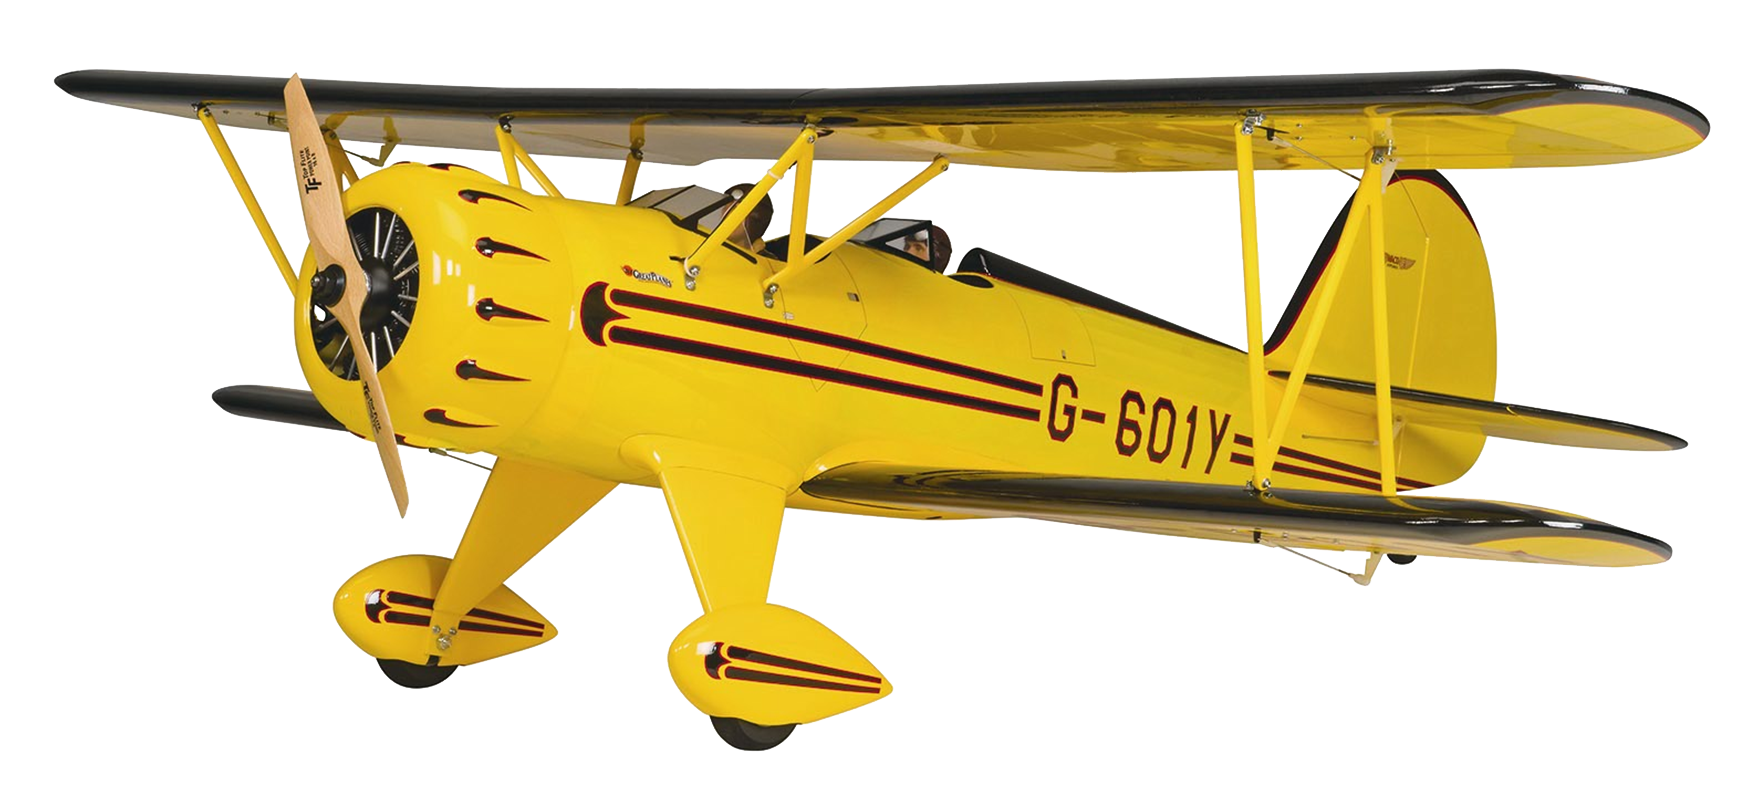 Biplane clipart yellow airplane. Free download clip art